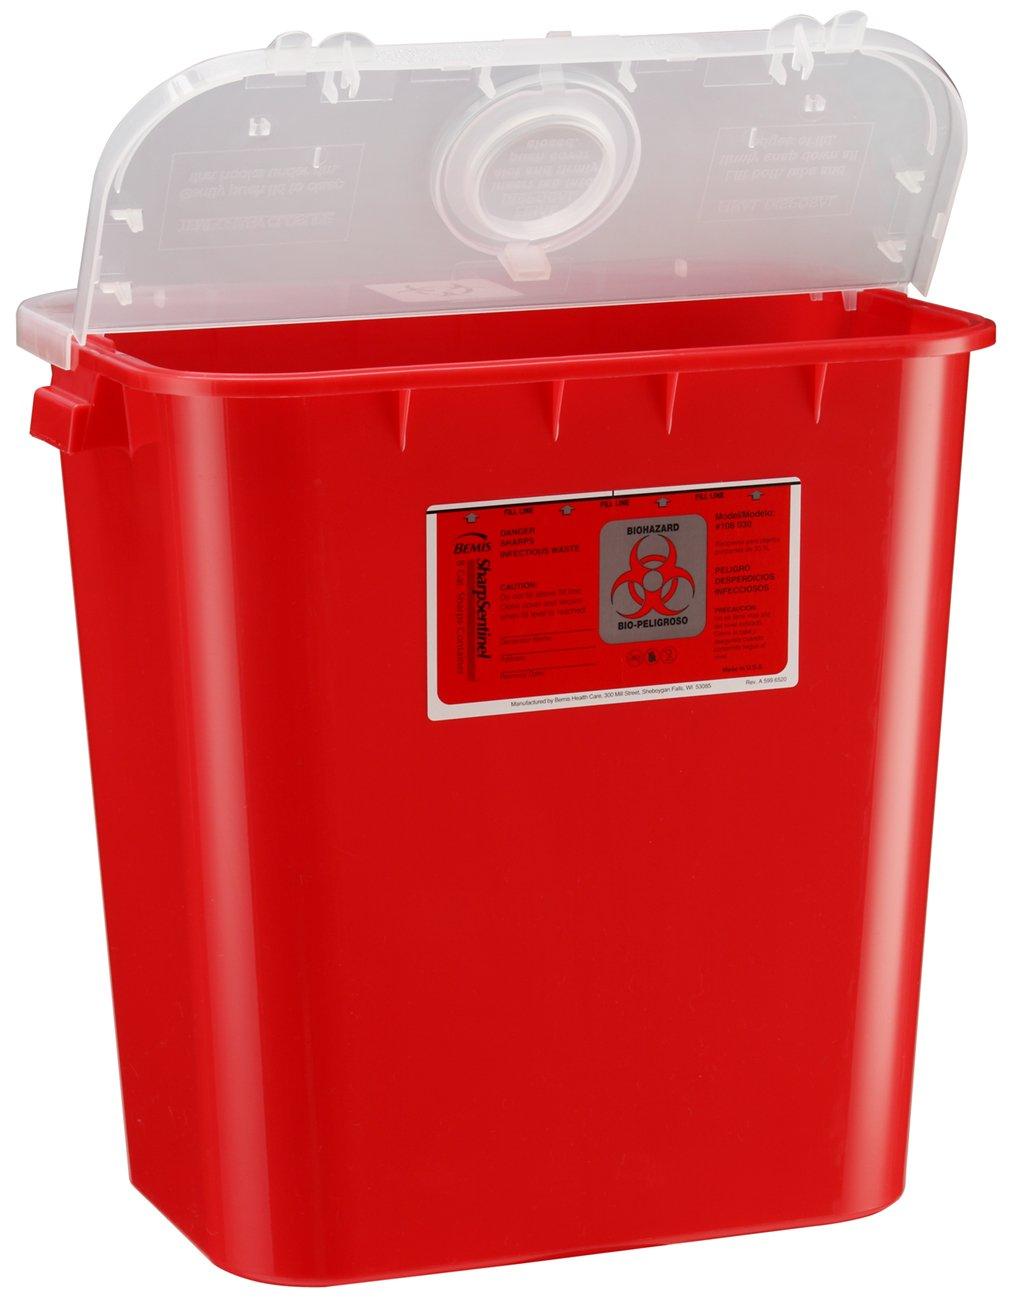 Bemis Healthcare 108030-10 8 gal Sharps Container, Red (Pack of 10)